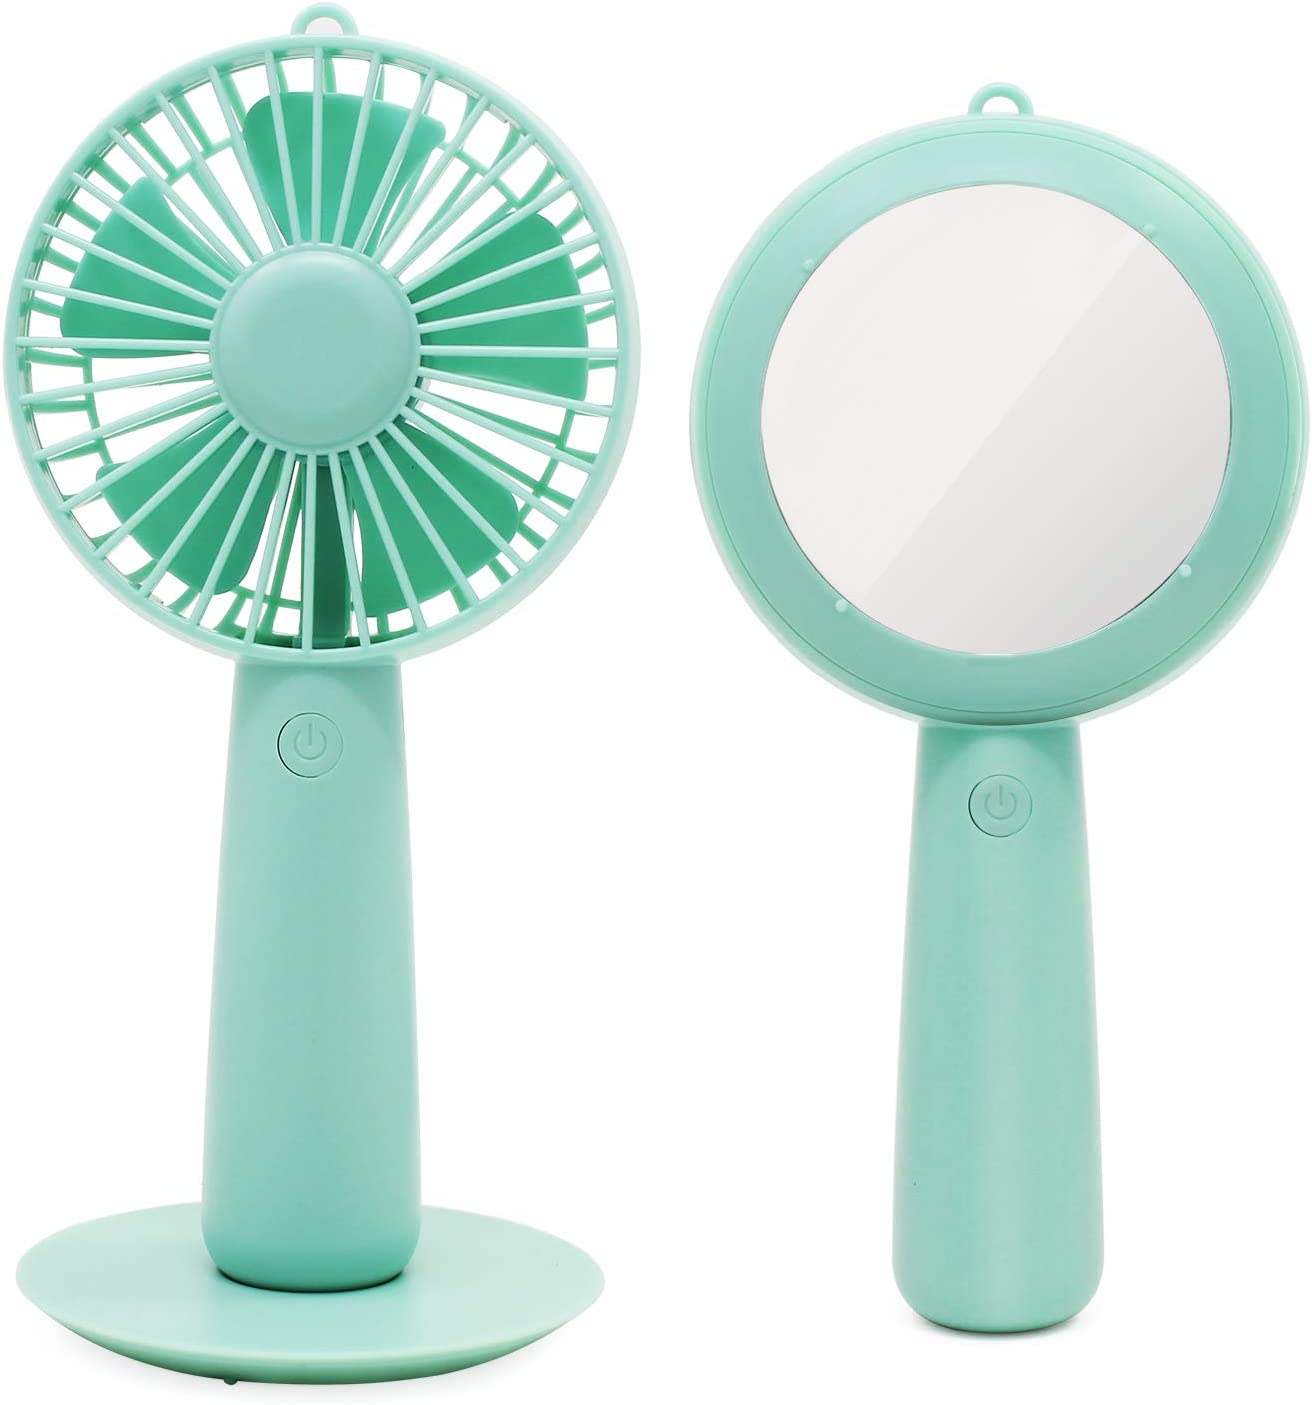 ESUMIC Handheld Portable Mirror USB Rechargeable Desk Cooling Fan Air Contioner Office Table Cooling Fan for Home Office Traveling Camping Green